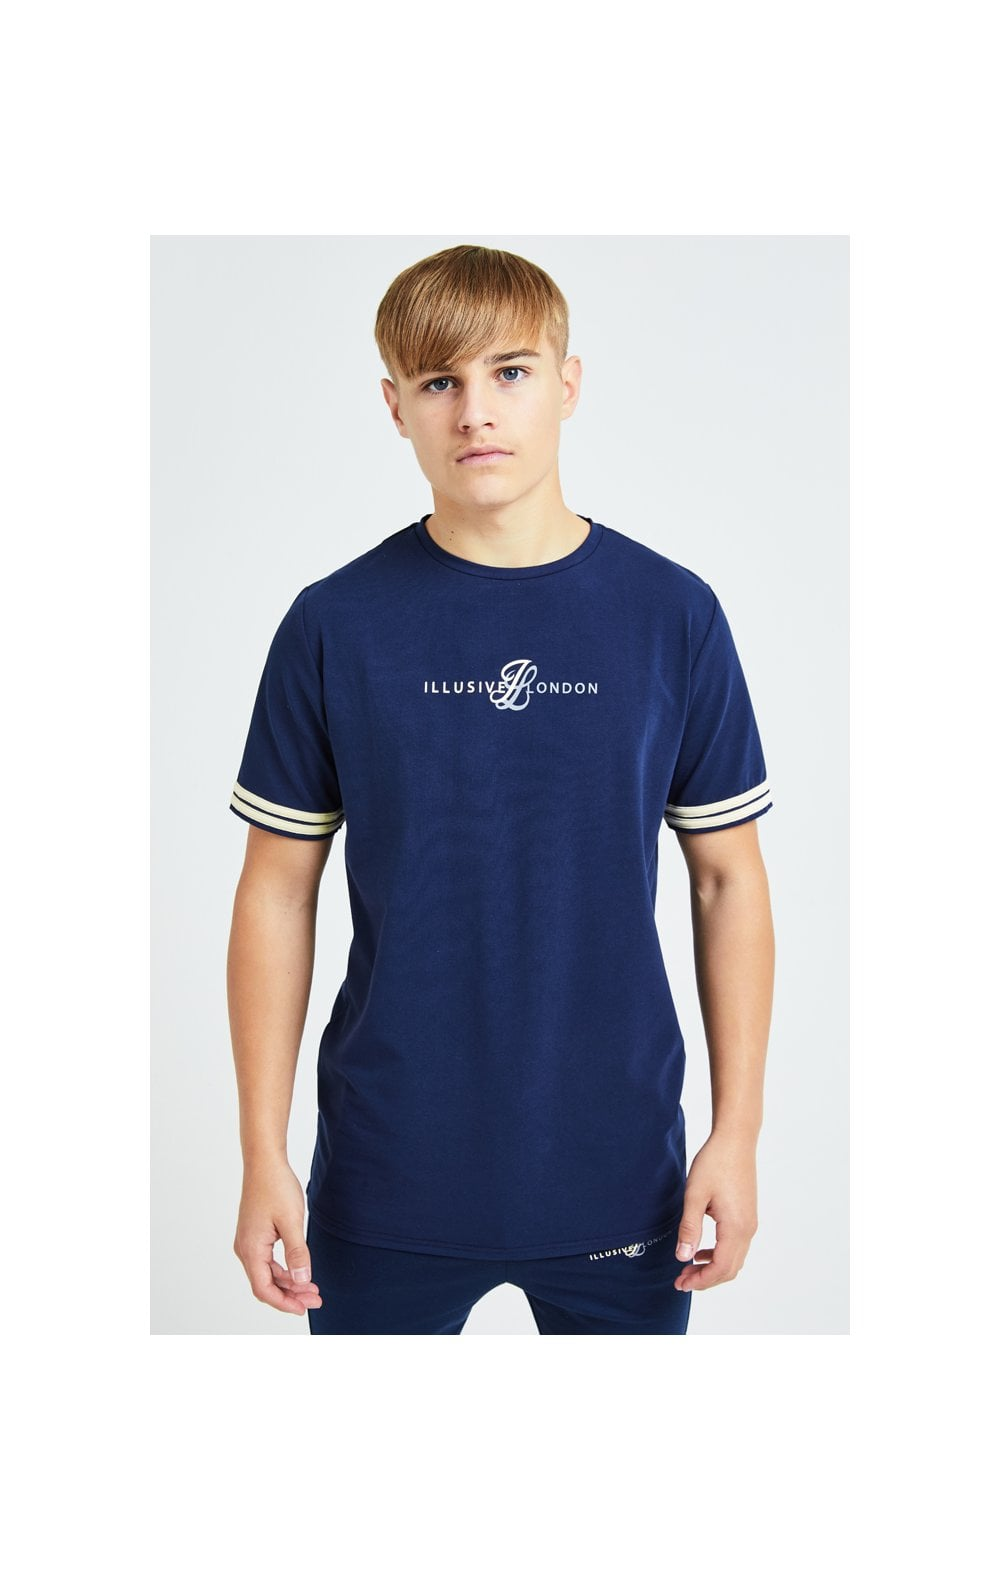 Illusive London Legacy Tee - Navy & Cream